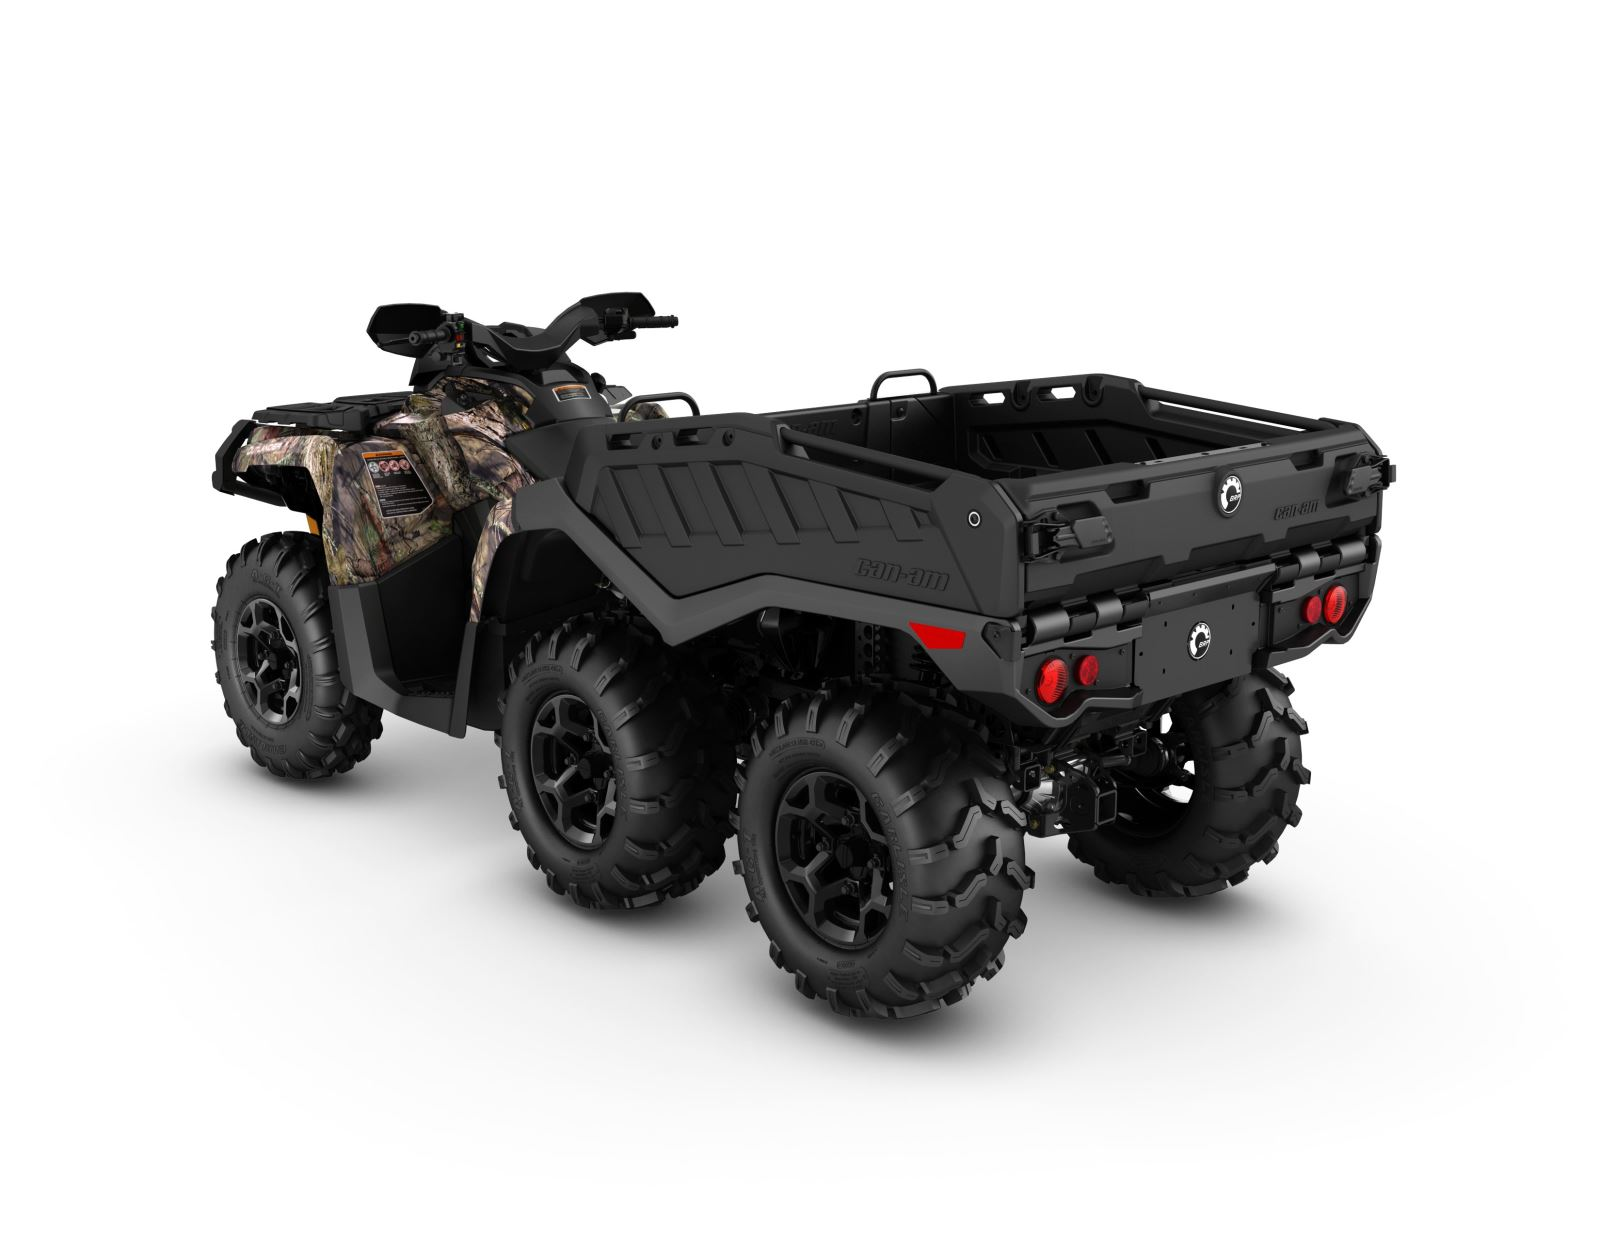 2017 Can Am Outlander 6x6 Family